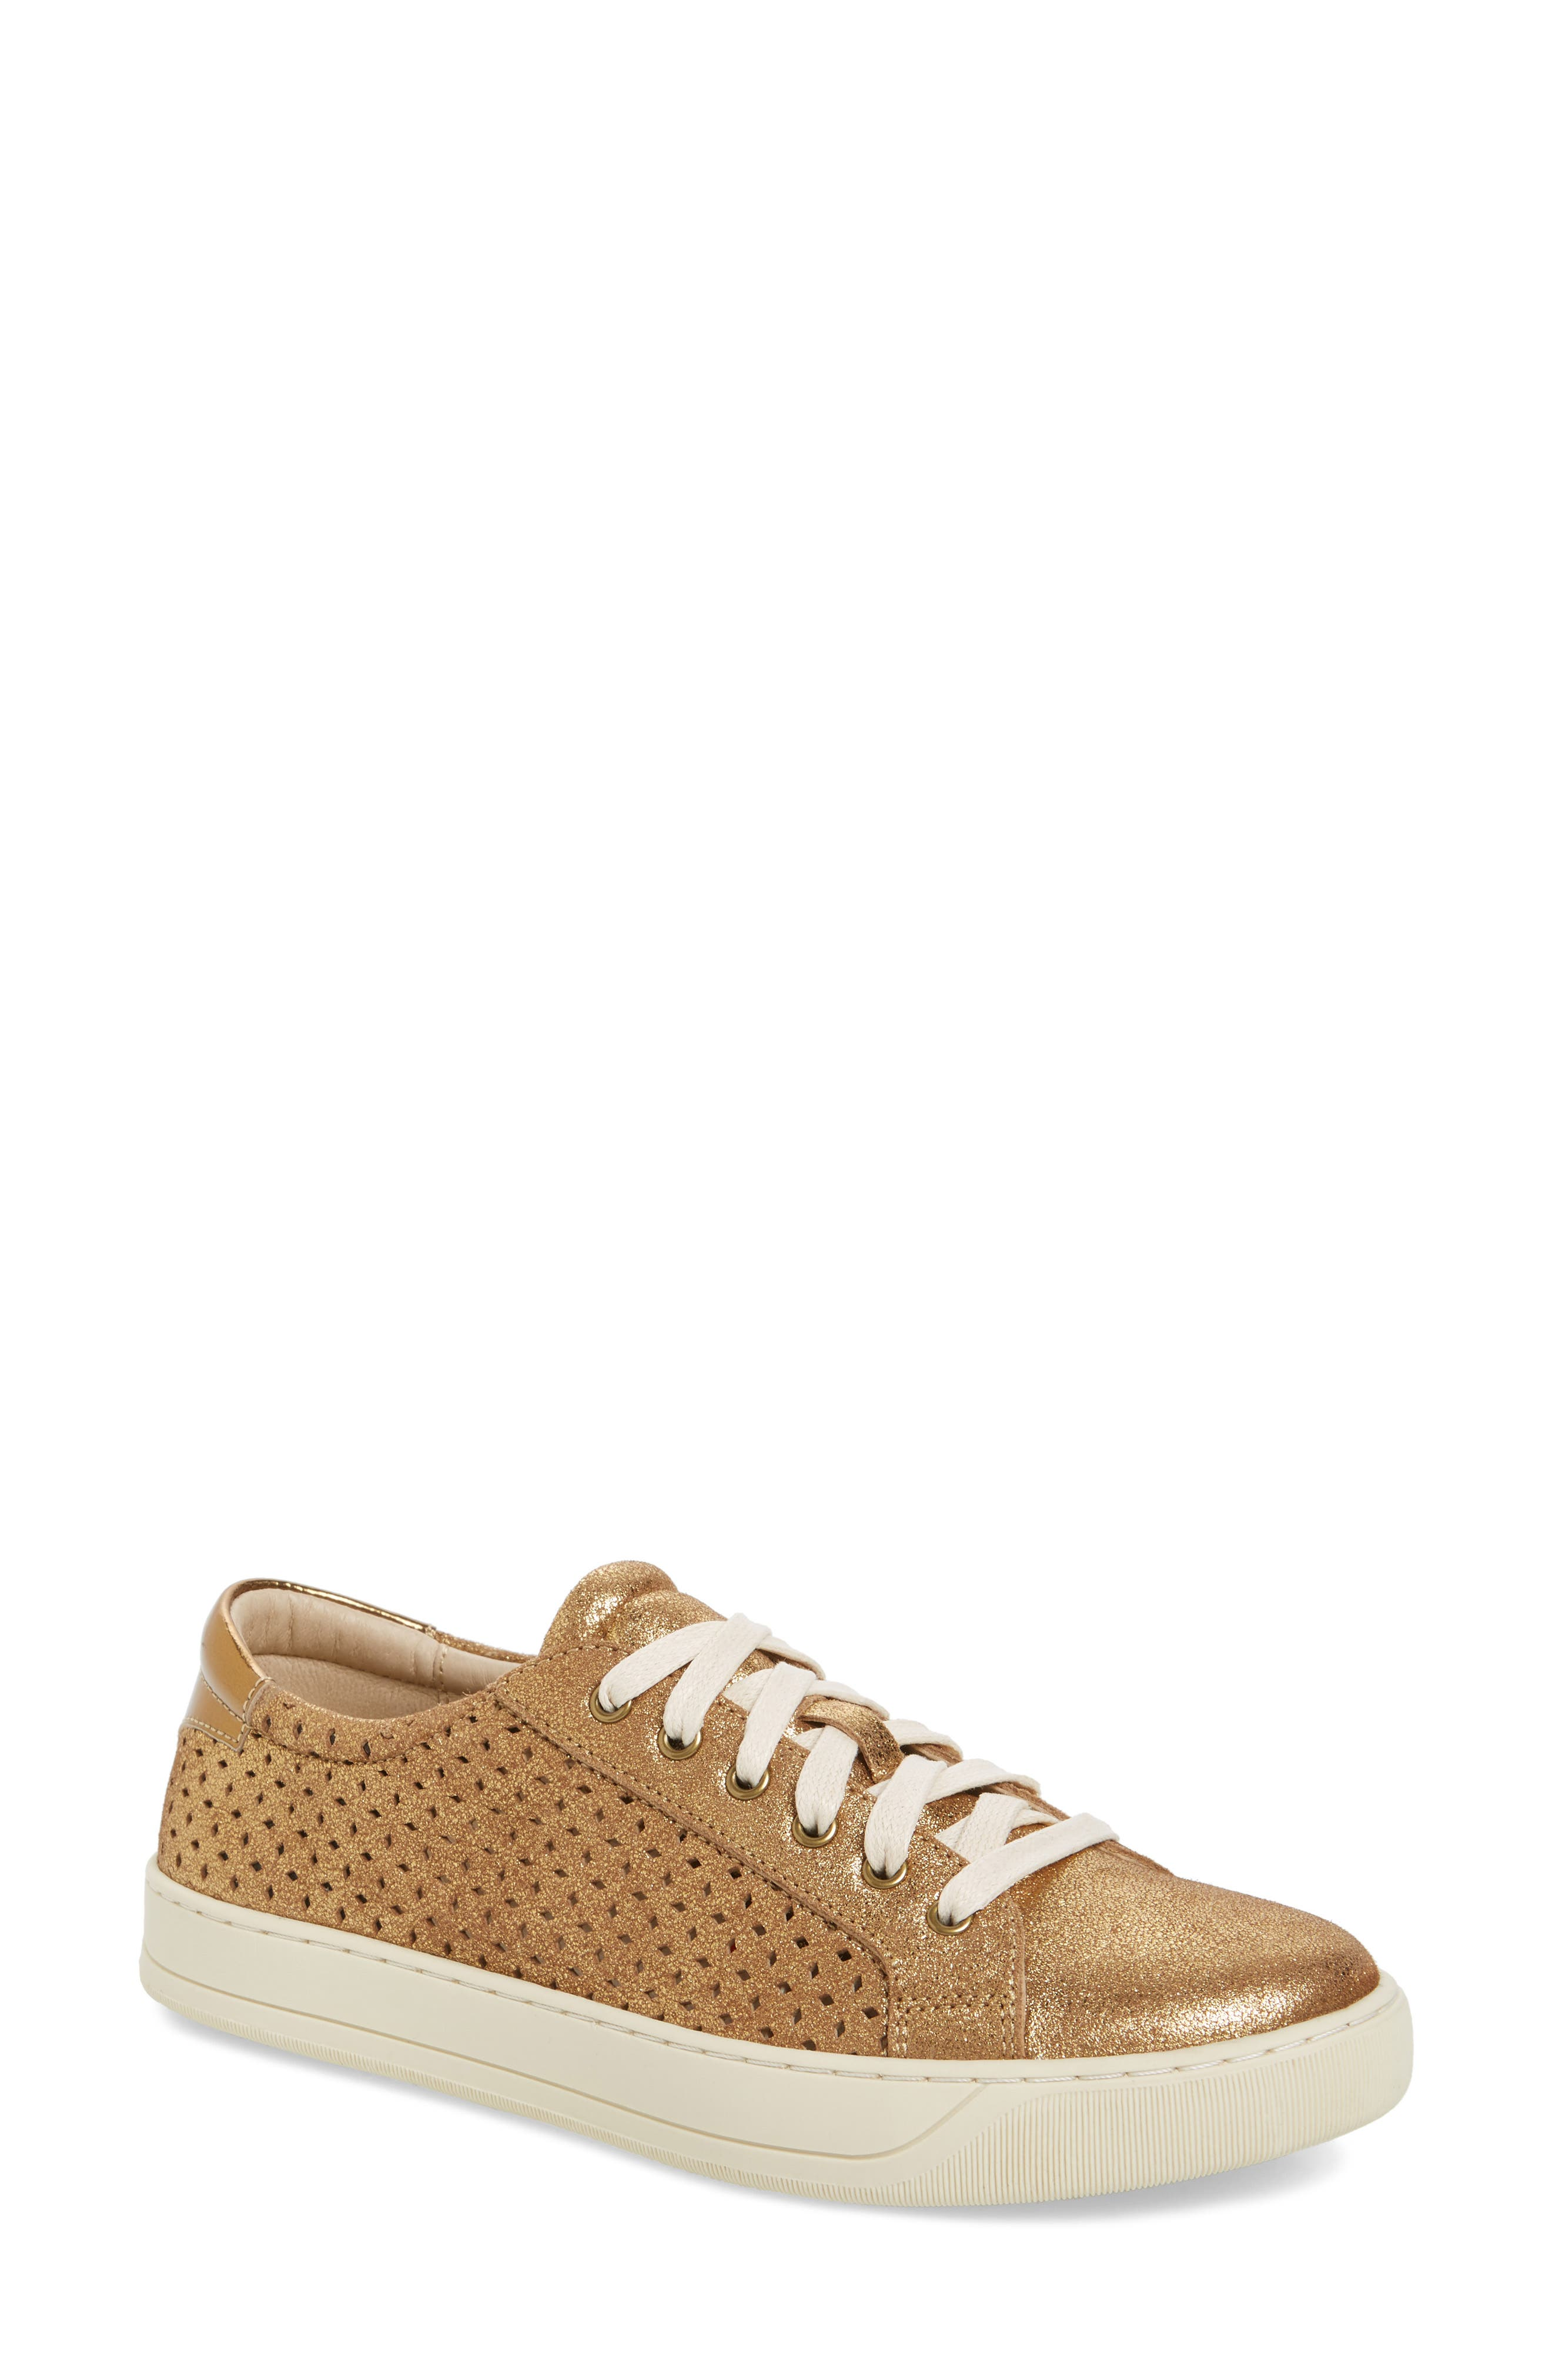 Emerson Perforated Sneaker,                             Main thumbnail 1, color,                             GOLD SUEDE